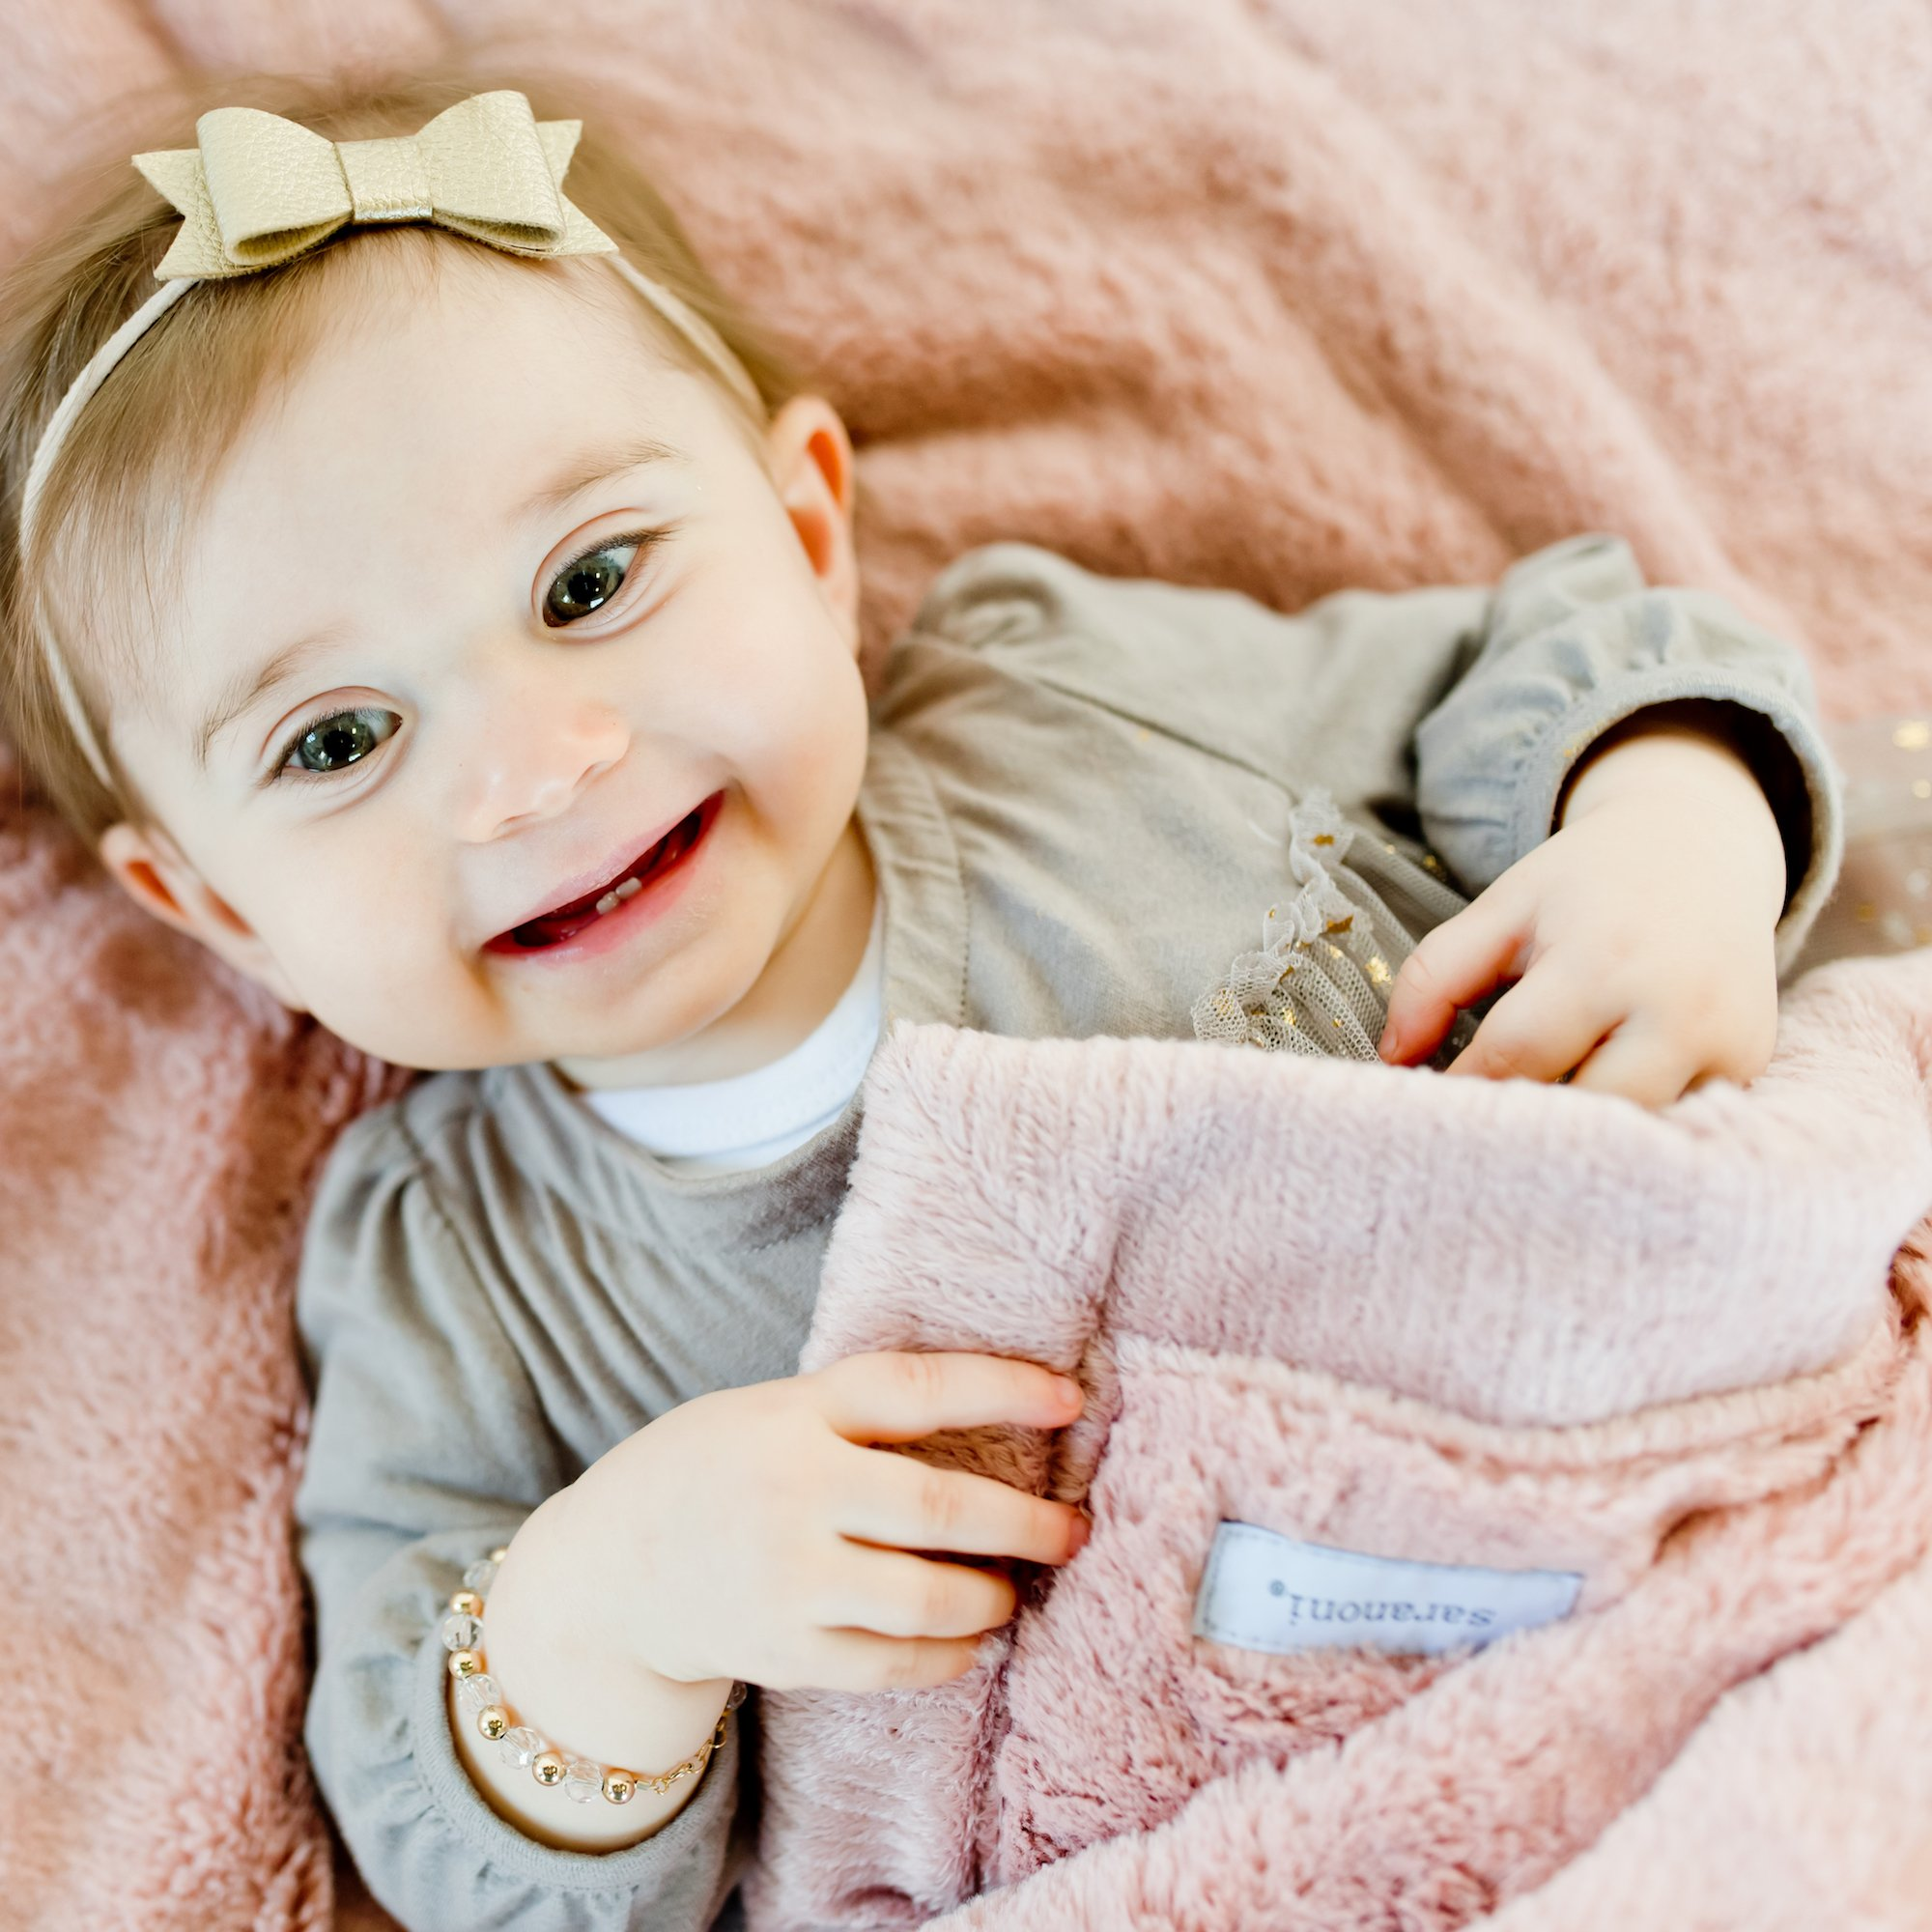 Saranoni Security Blankets for Babies Super Soft Boutique Quality Lush Luxury Baby Blanket (Mini 15'' x 20'', Ballet Slipper Pink)